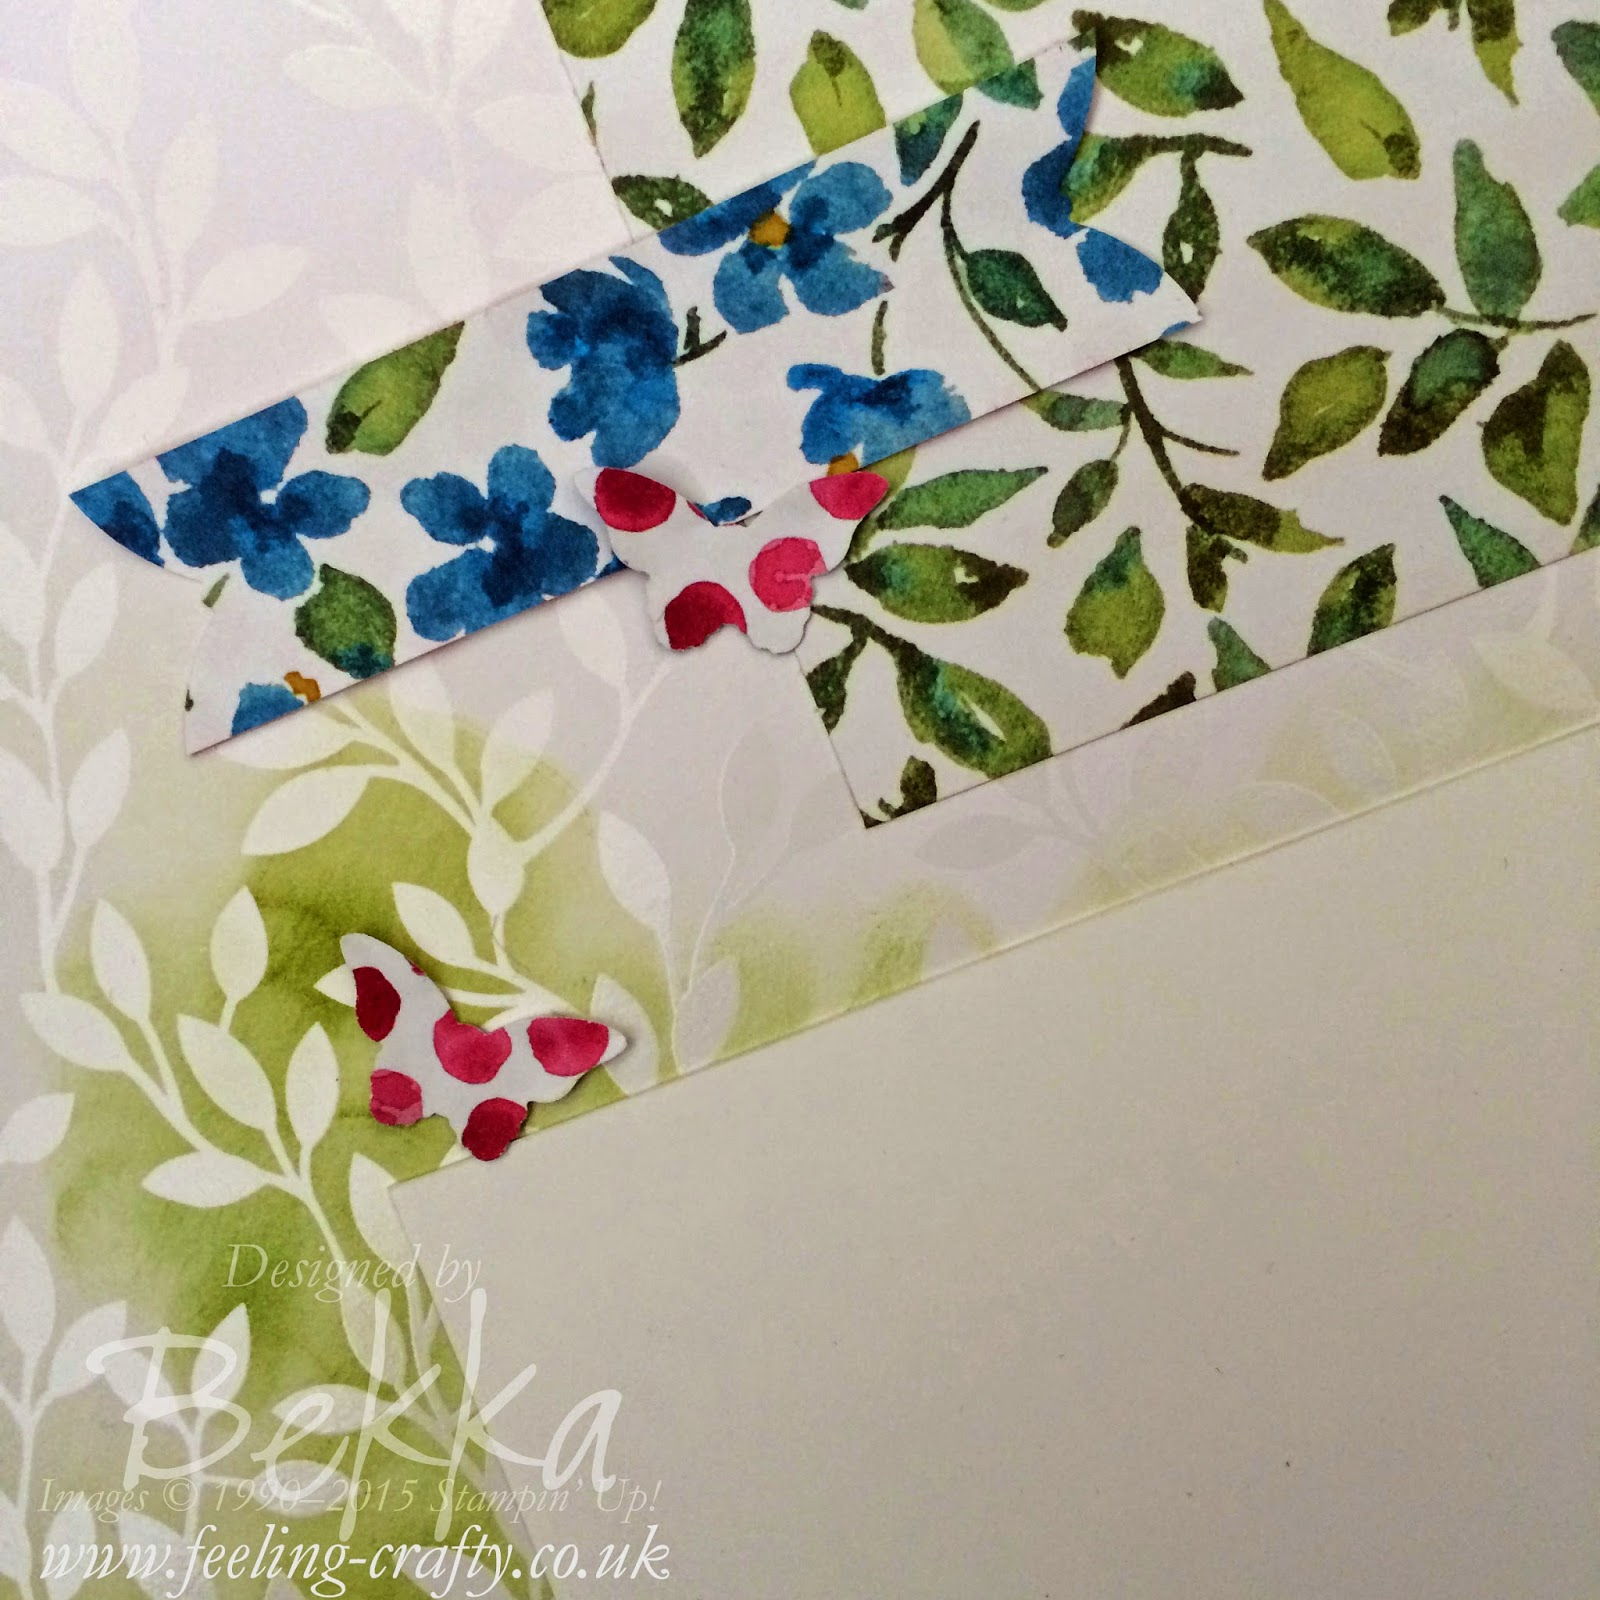 Painted Blooms Irresistibly Yours Scrapbook Start Point - check this blog for lots of great inspiration